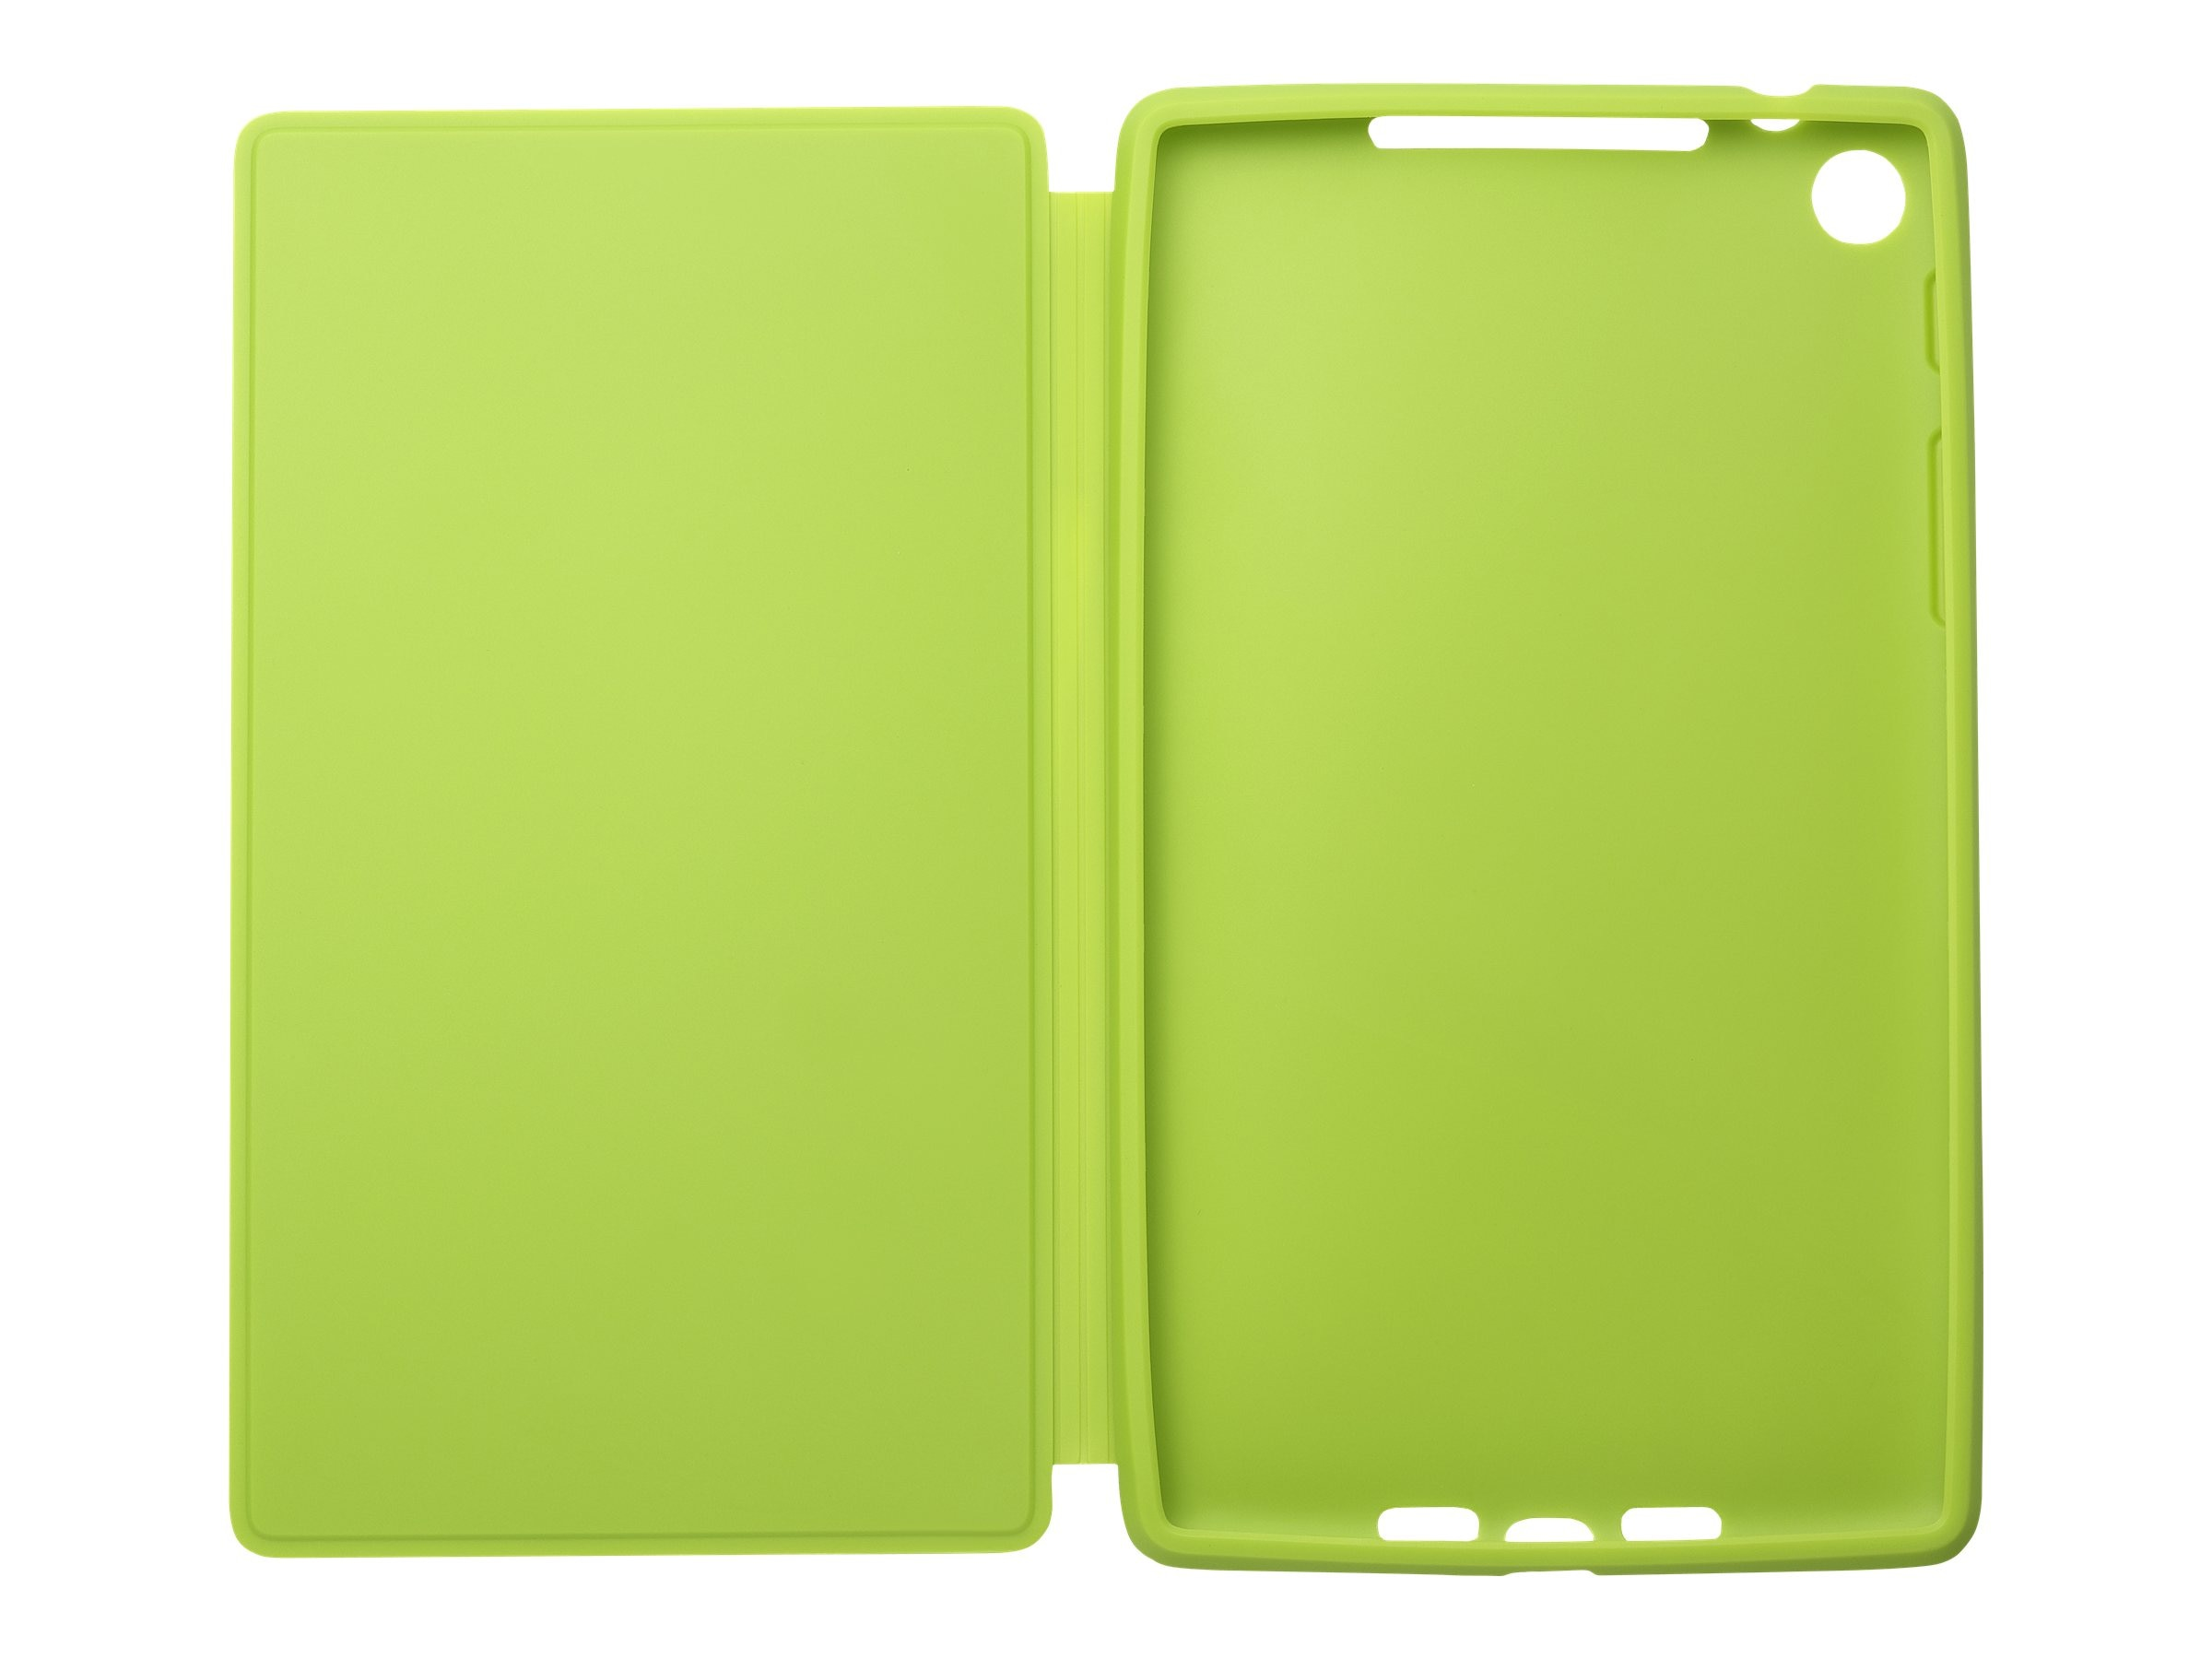 Asus Travel Cover, Green, 90-XB3TOKSL001T0-, 31216058, Carrying Cases - Tablets & eReaders